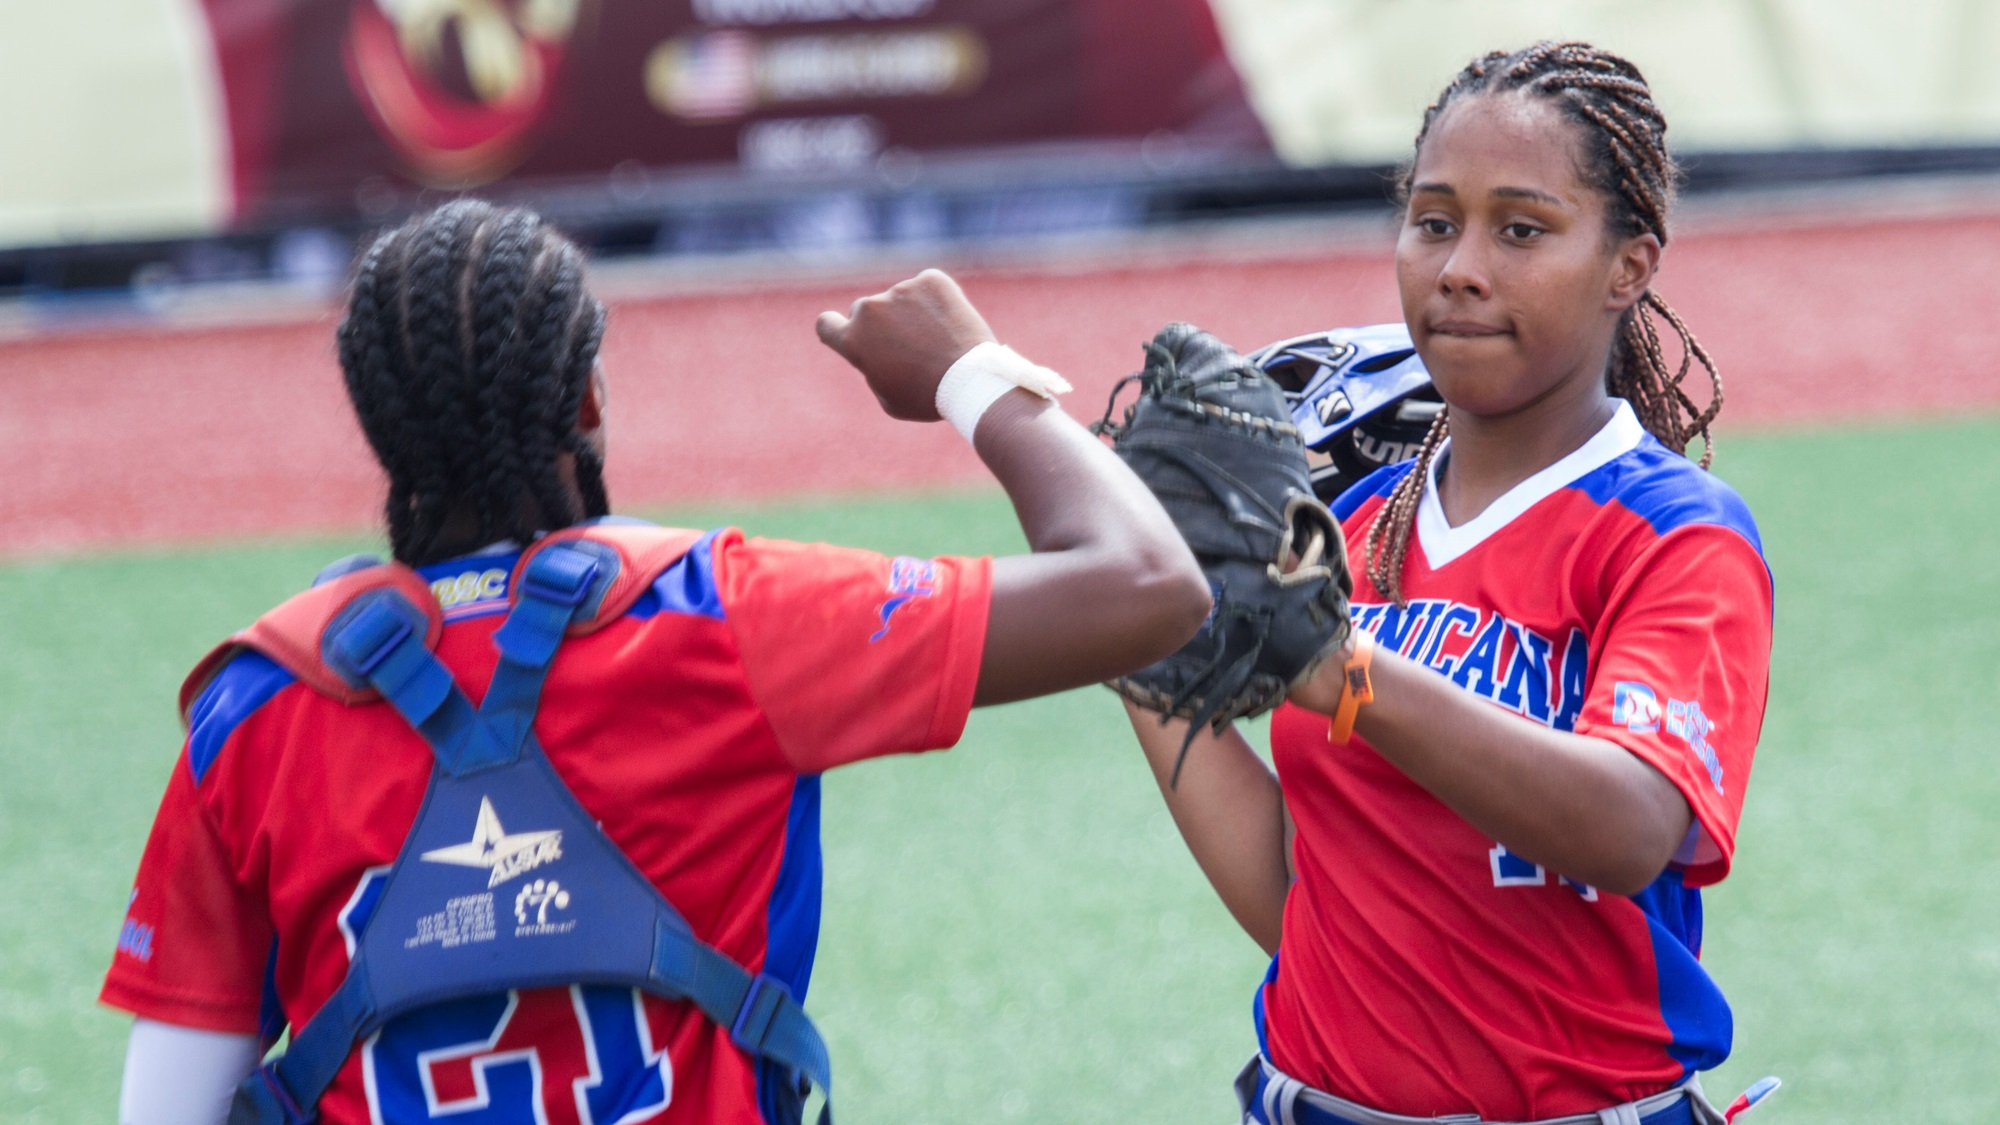 The Dominican Republic qualified for the first time for Women's Baseball World Cup